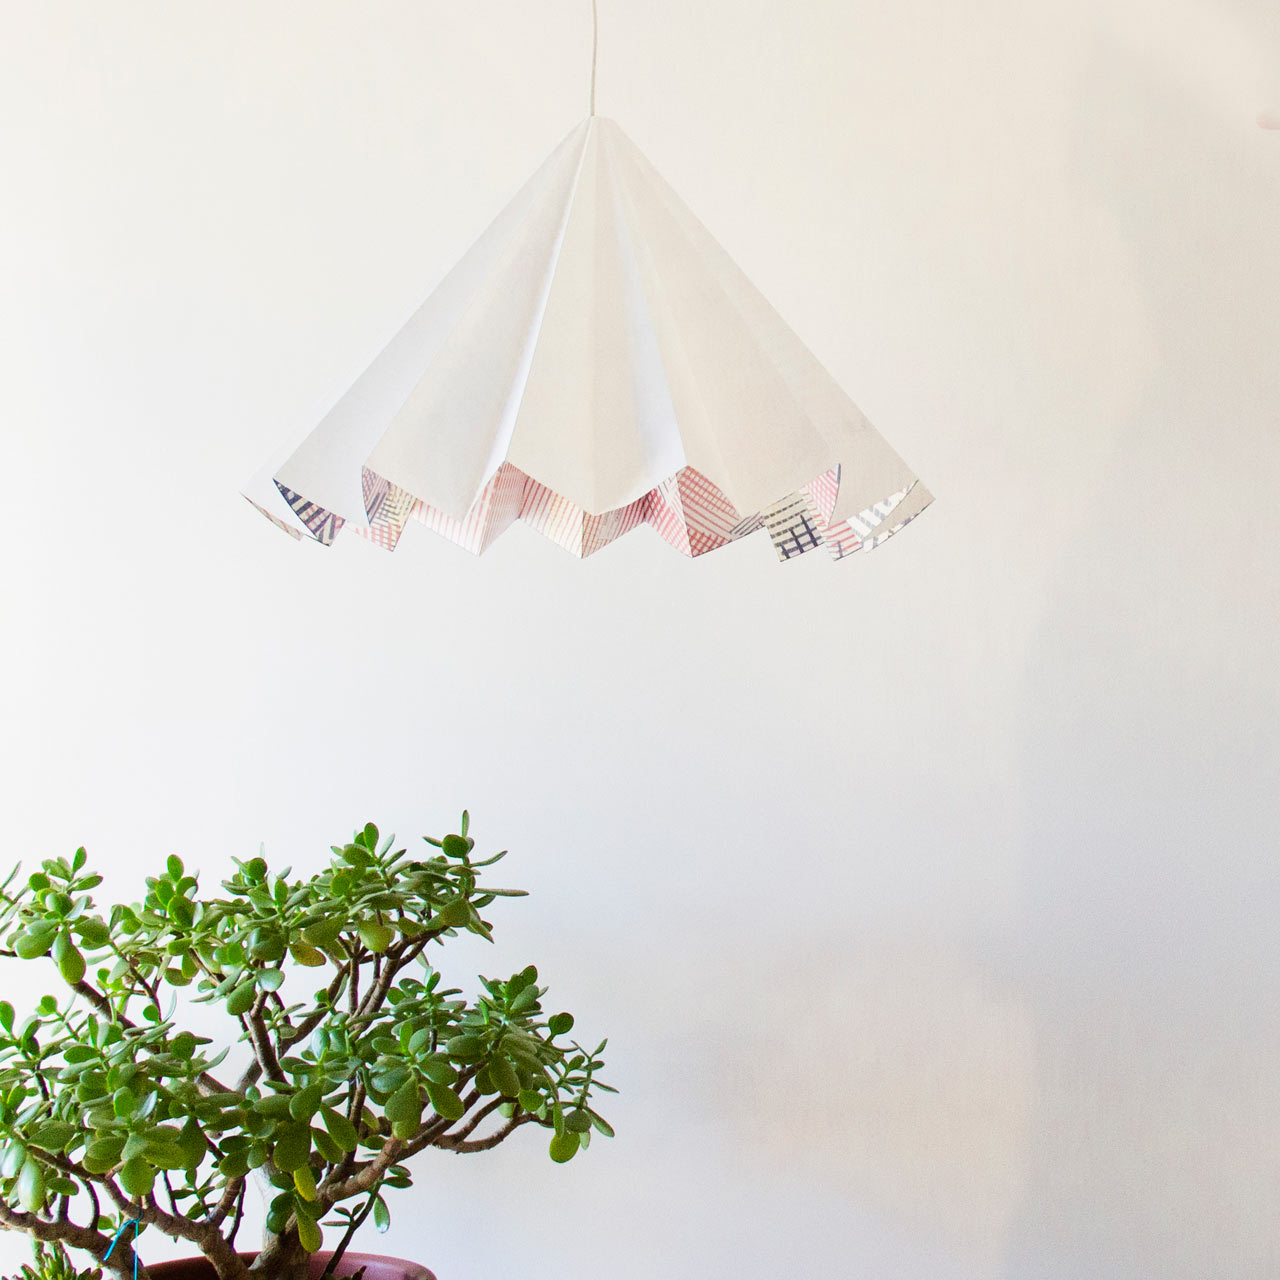 A Folded Lamp That Looks Good Day or Night